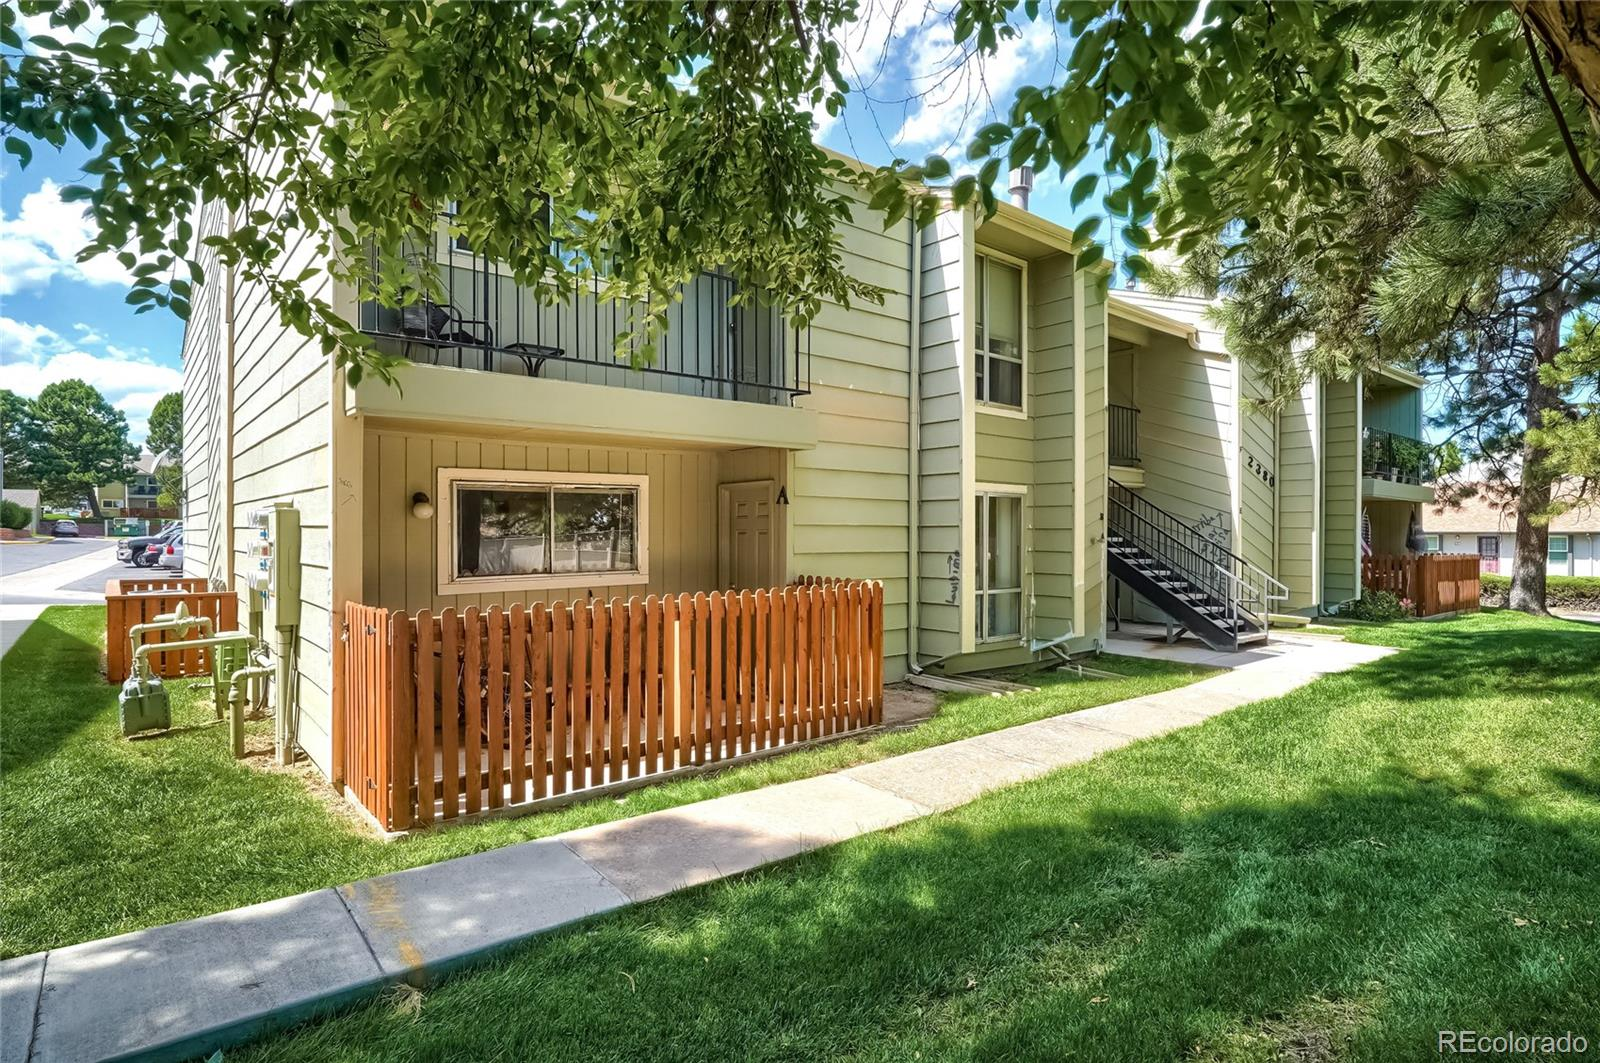 Attention Investors Great Opportunity to own an End Unit Condo in Desirable Southglenn Commons. Property is tenant occupied until ** May 1st, 2022.** This Ground level home offers 1 Bedroom, 1 Bath and is Ideally Situated in a Very Convenient Location! Within Walking distance to Grocery Stores, Dining, Cafes, Parks, Miles of Trails, Retail and Public Transit. Great Main Level Condo offers Large Windows that flood the Home with Natural Light in every room. The Spacious Living Room is inviting and is open to the Dining Room. This Dining area is also perfect as a Flex Space and would be a great as an Office. Multiple Cooks in the Kitchen? No problem, this Large Kitchen has plenty of Space! Enough room for a Breakfast Nook, there's also a Breakfast Bar, a Pantry for extra Storage, and Appliances are included. The Generous Sized Bedroom has a Walk-in Closet and a Full en Suite Bath. Laundry is in-unit in a designated hallway space. The Sunny Private Fenced Patio is large enough for Outdoor Seating, Table and Grill. Central A/C, Ceiling Fan, No Stairs. This Established community allows for Ample Parking Spaces at all times of day for Residents and Guests. Take advantage of the Community Pool and the Clubhouse. Walk to the Streets at Southglenn, High School and Tennis Courts. Short Walk to Parks and Miles of Trails. Just a few minutes to Entertainment and Golf. Quick, Easy Access to 470. See 3-D Virtual Tour. Tenant occupied and subject to a lease until April 2022.